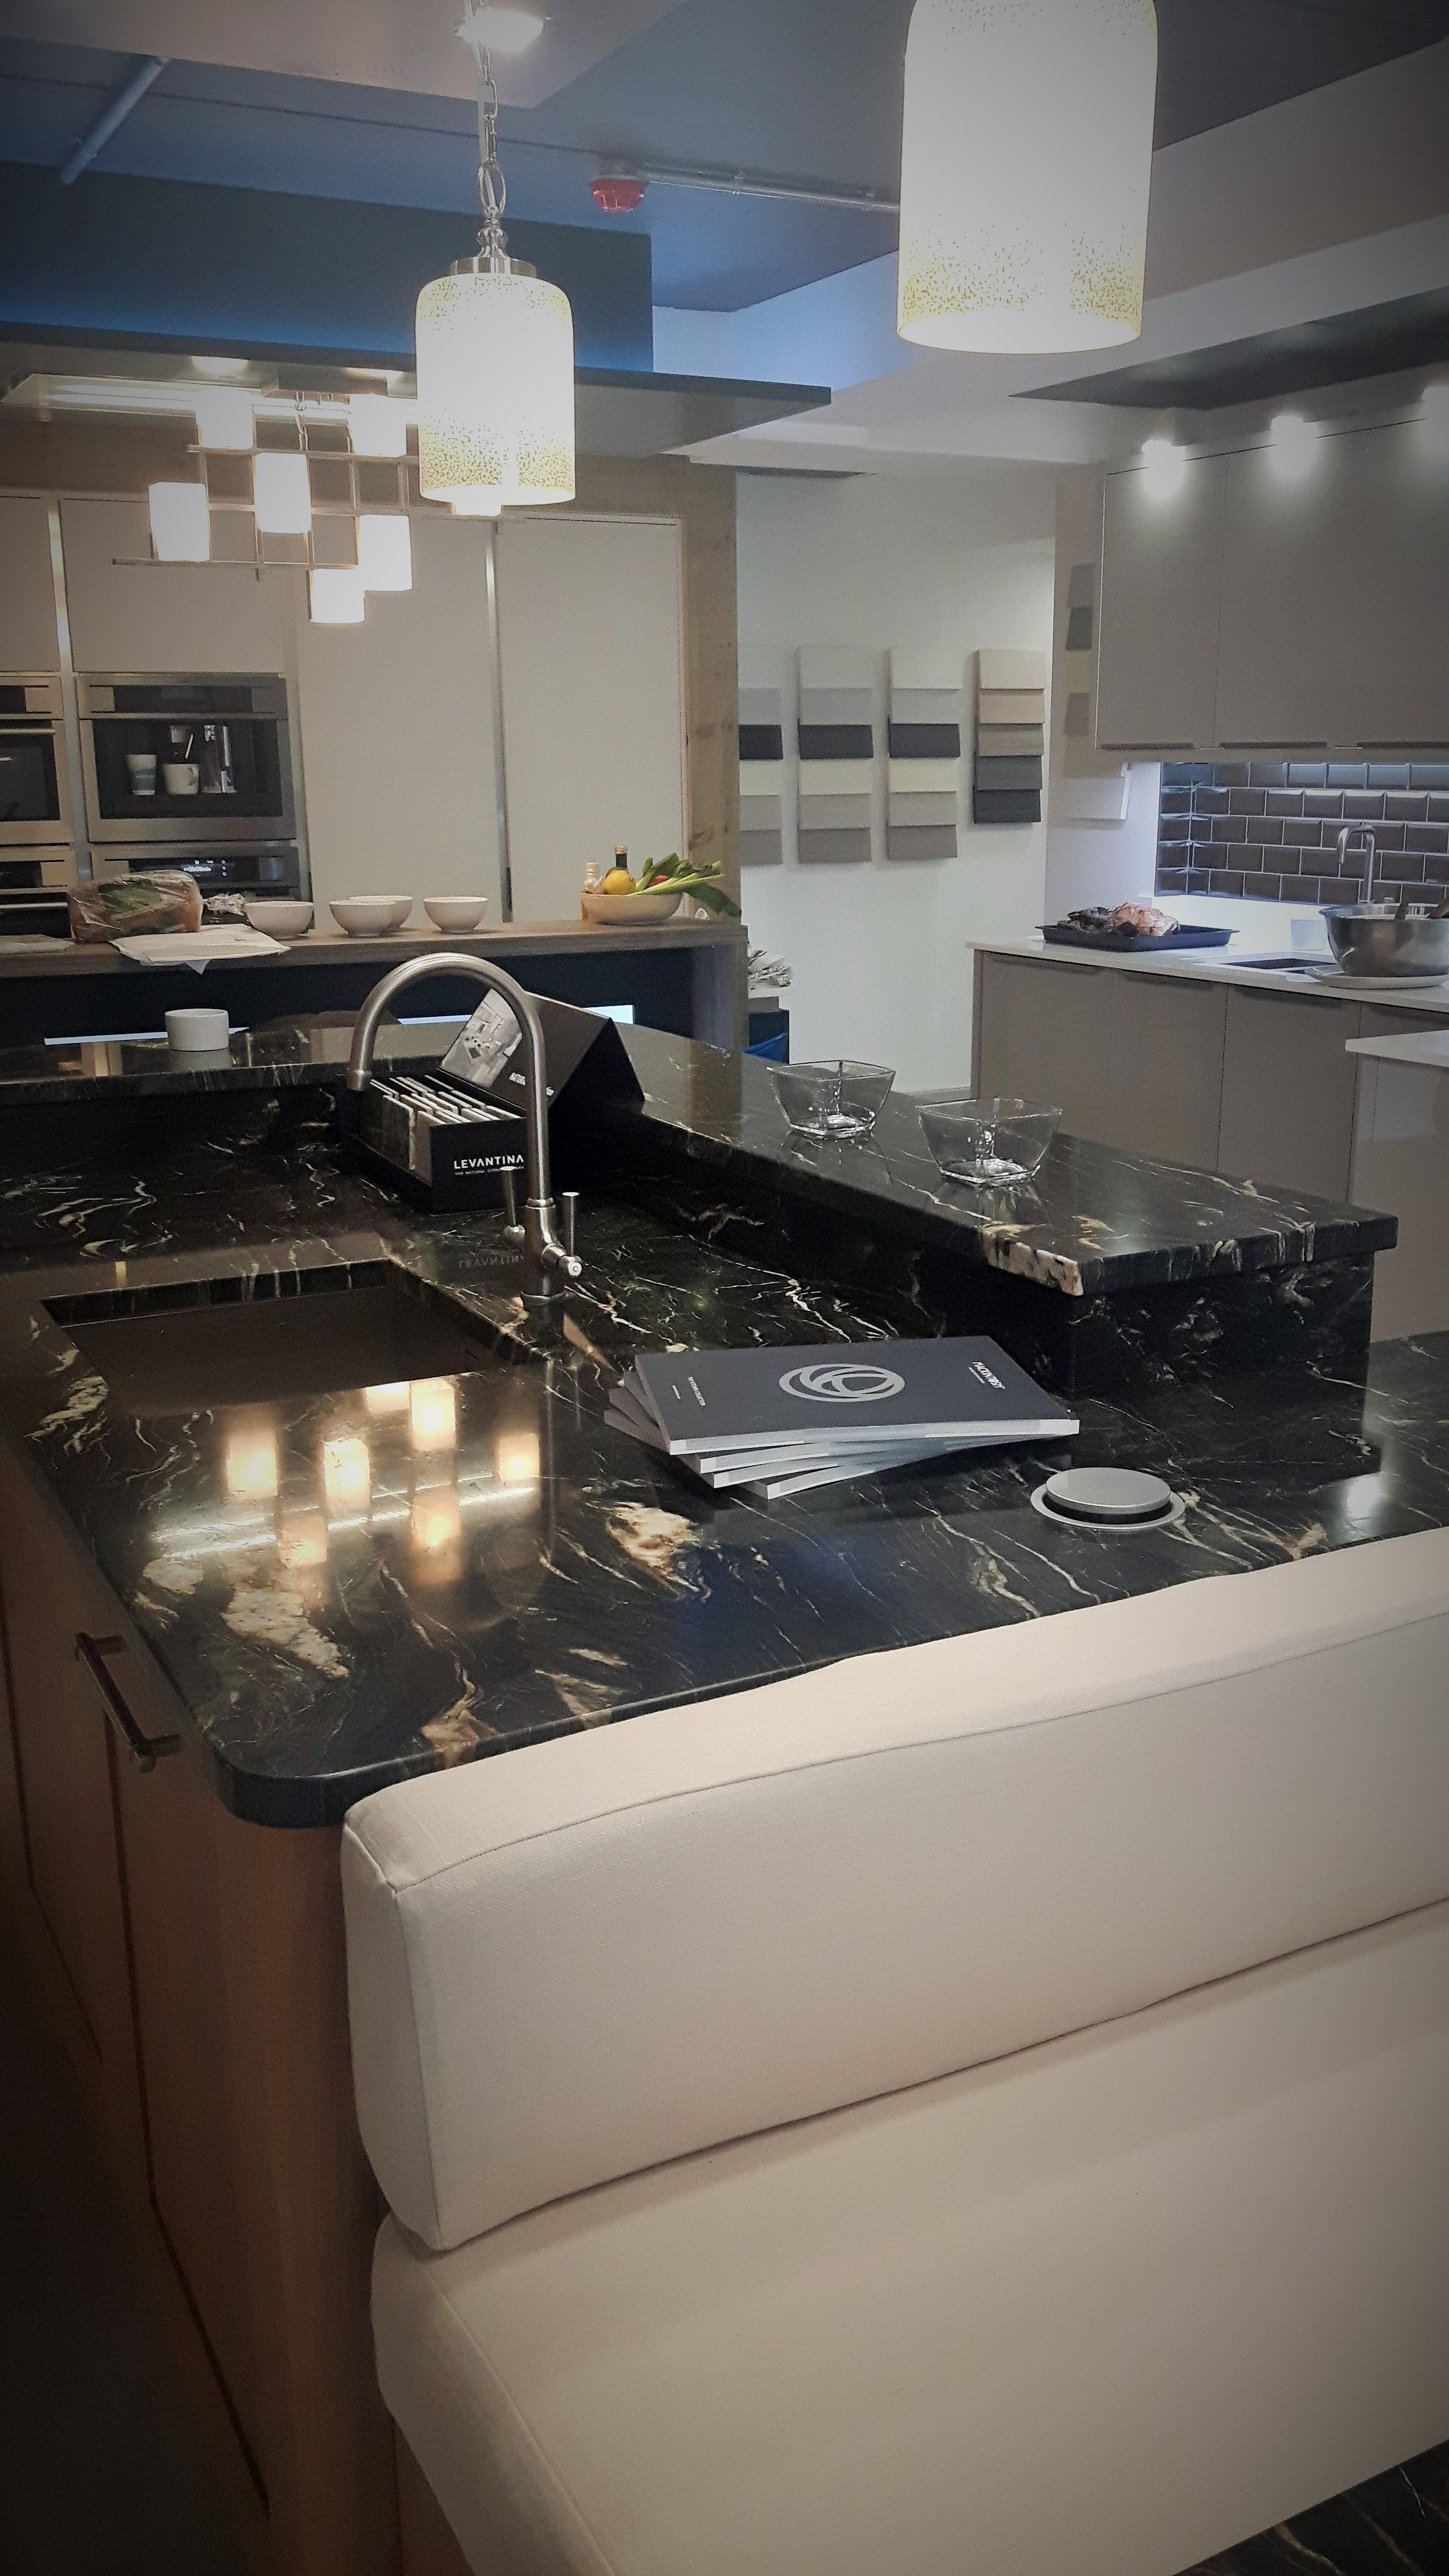 Belvedere Granite Made And Fitted By Our Team. Kitchen WorktopsGranite